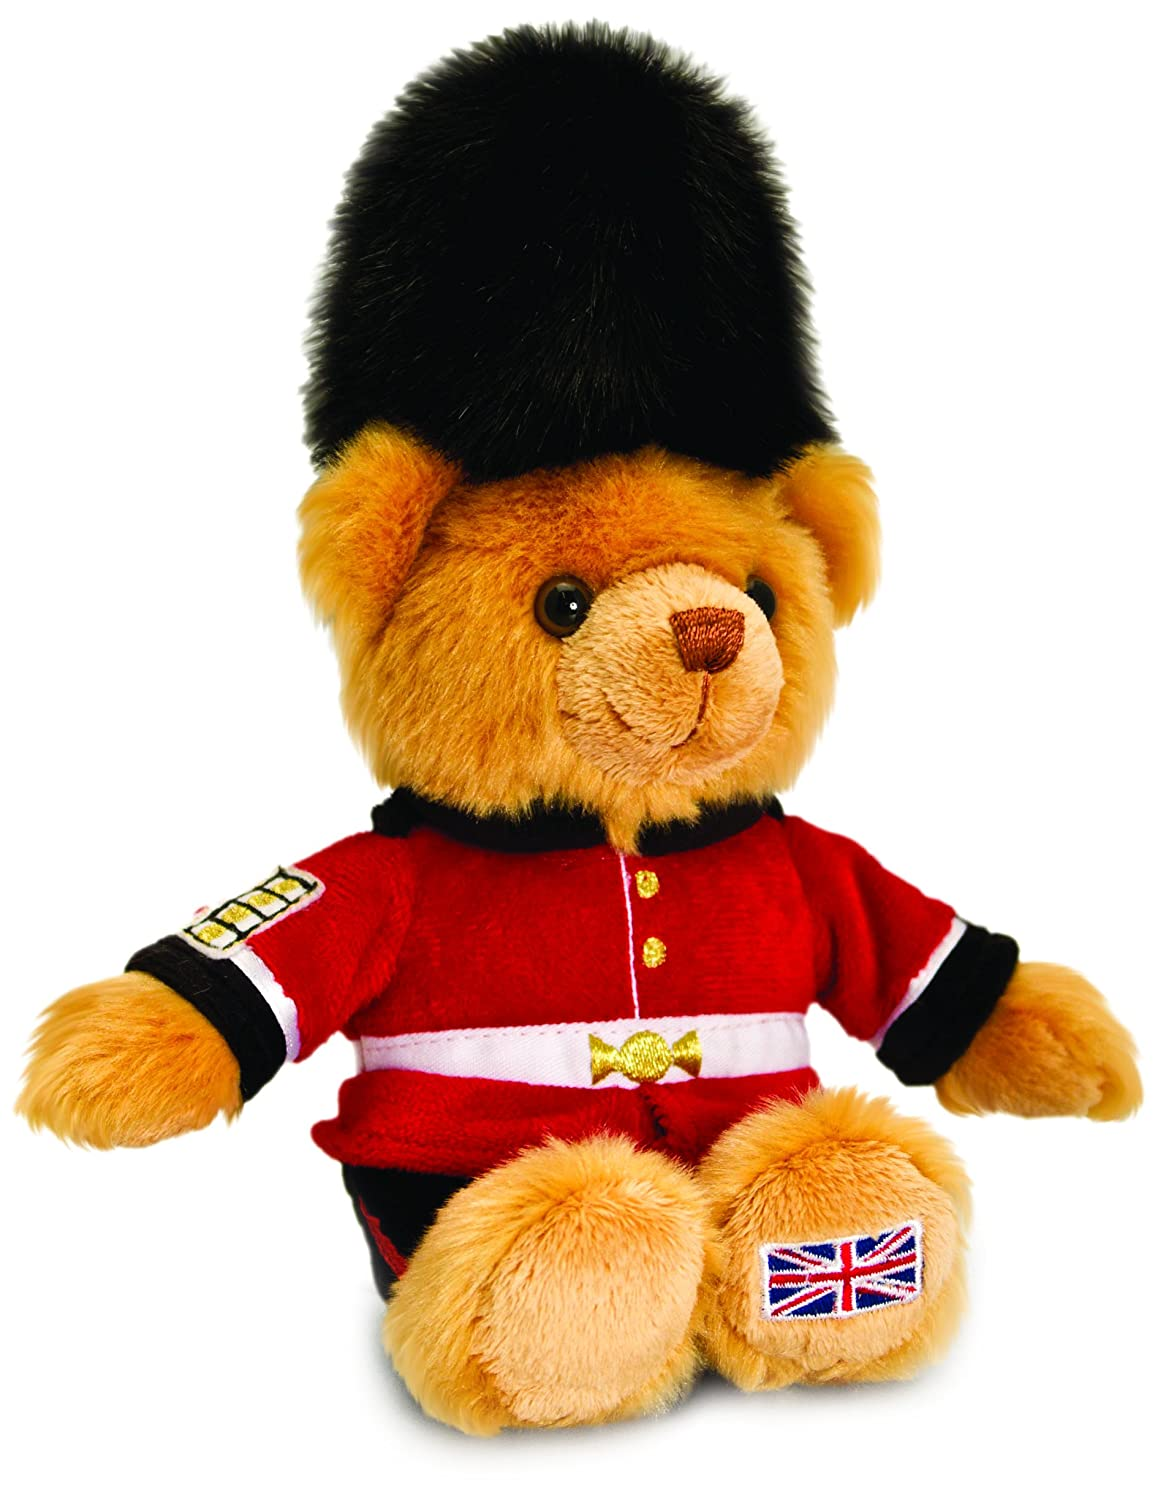 Amazon.com: London Beefeater Bear - Souvenir Soft Toy, Keel Toys 15 cm Teddy - SL4146 [Toy]: Home & Kitchen